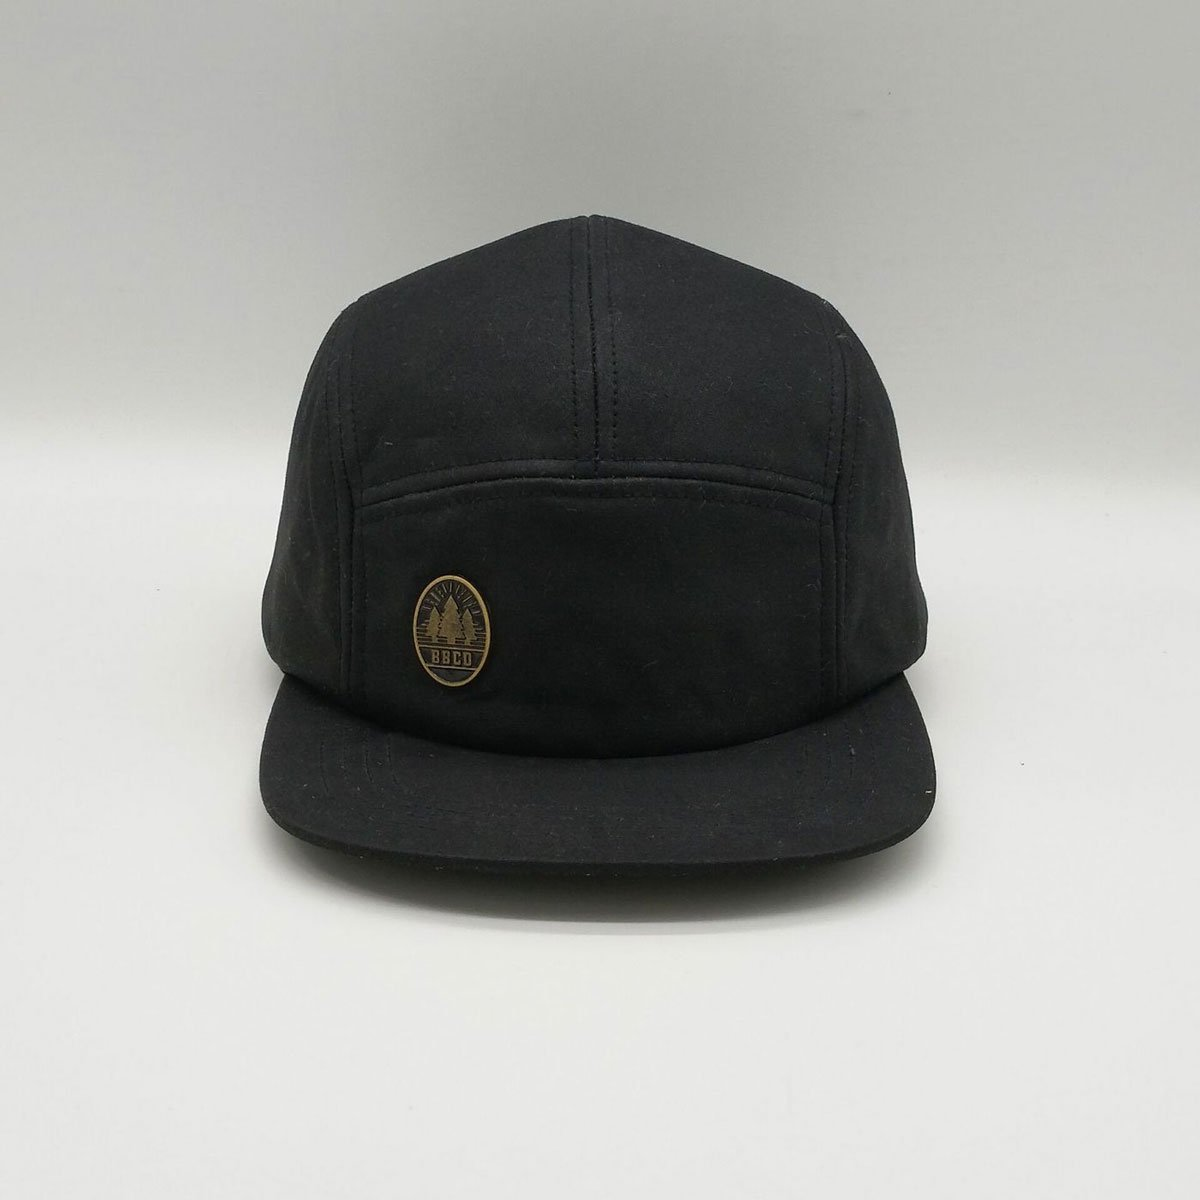 BBCo Headwear | The Lincoln Wax Cap | 5 Panel Cap | Waxed Cotton